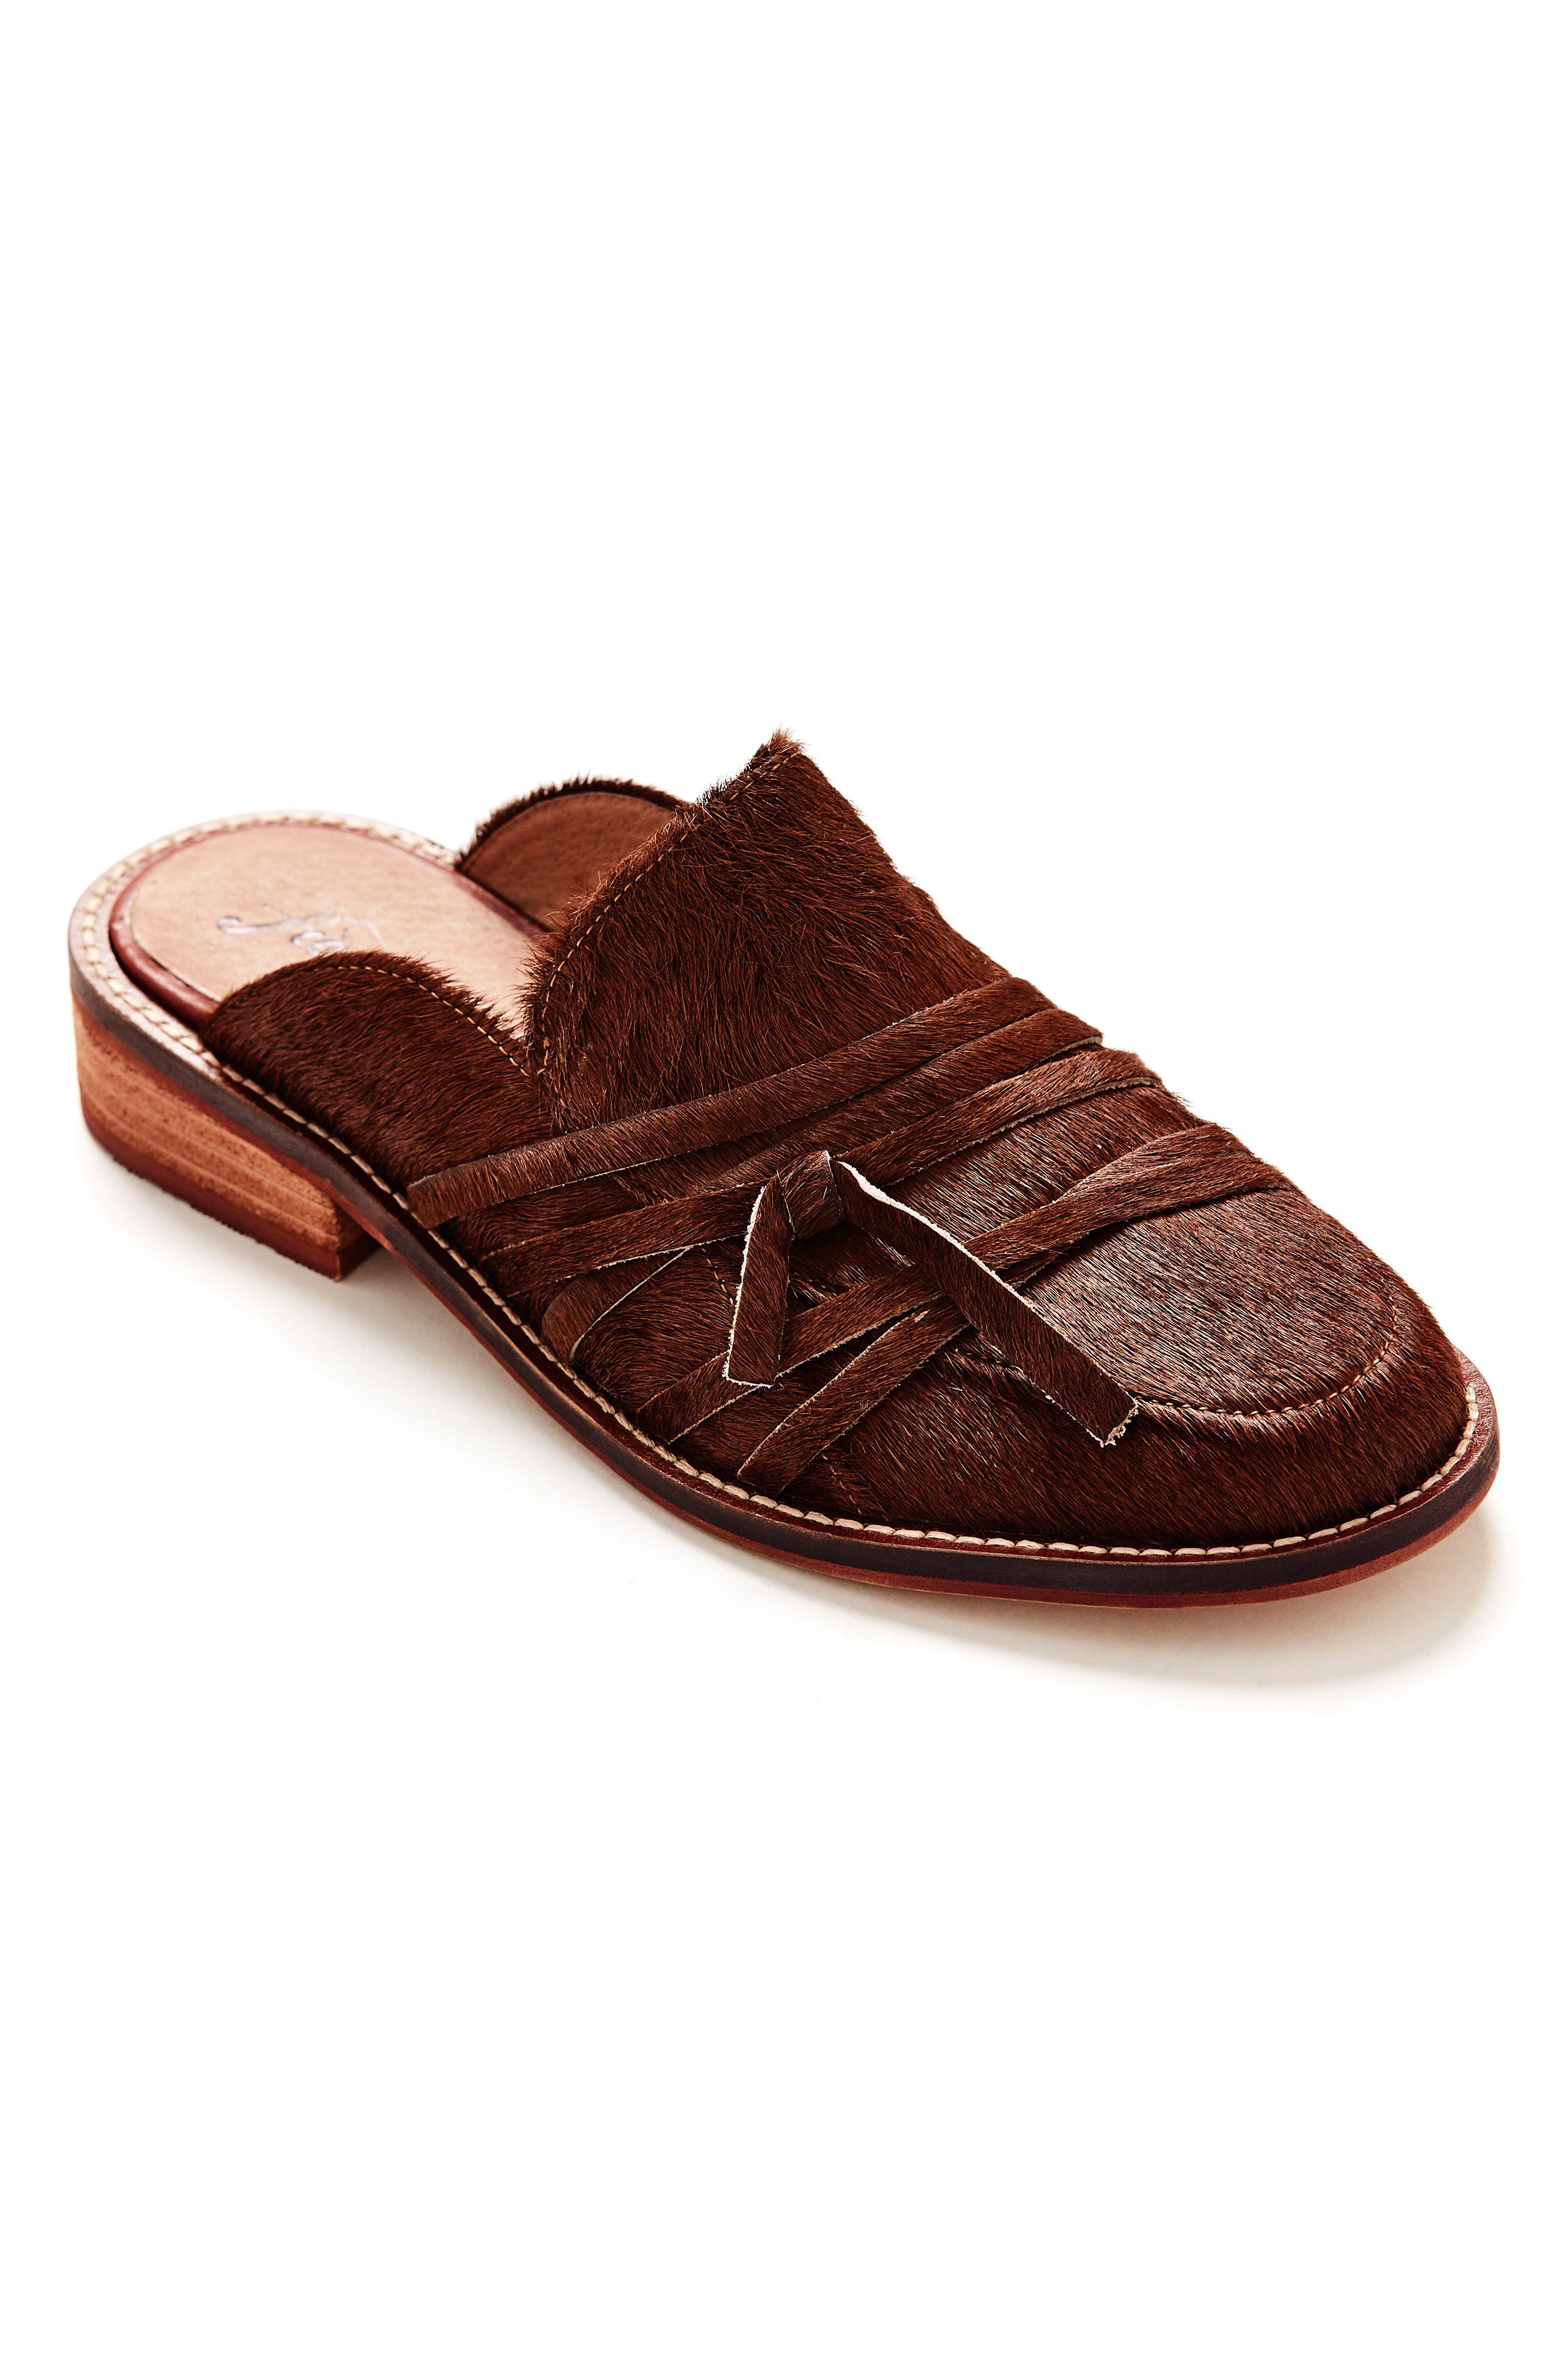 Saratoga Loafer Mule,                             Alternate thumbnail 8, color,                             COPPER CALF HAIR